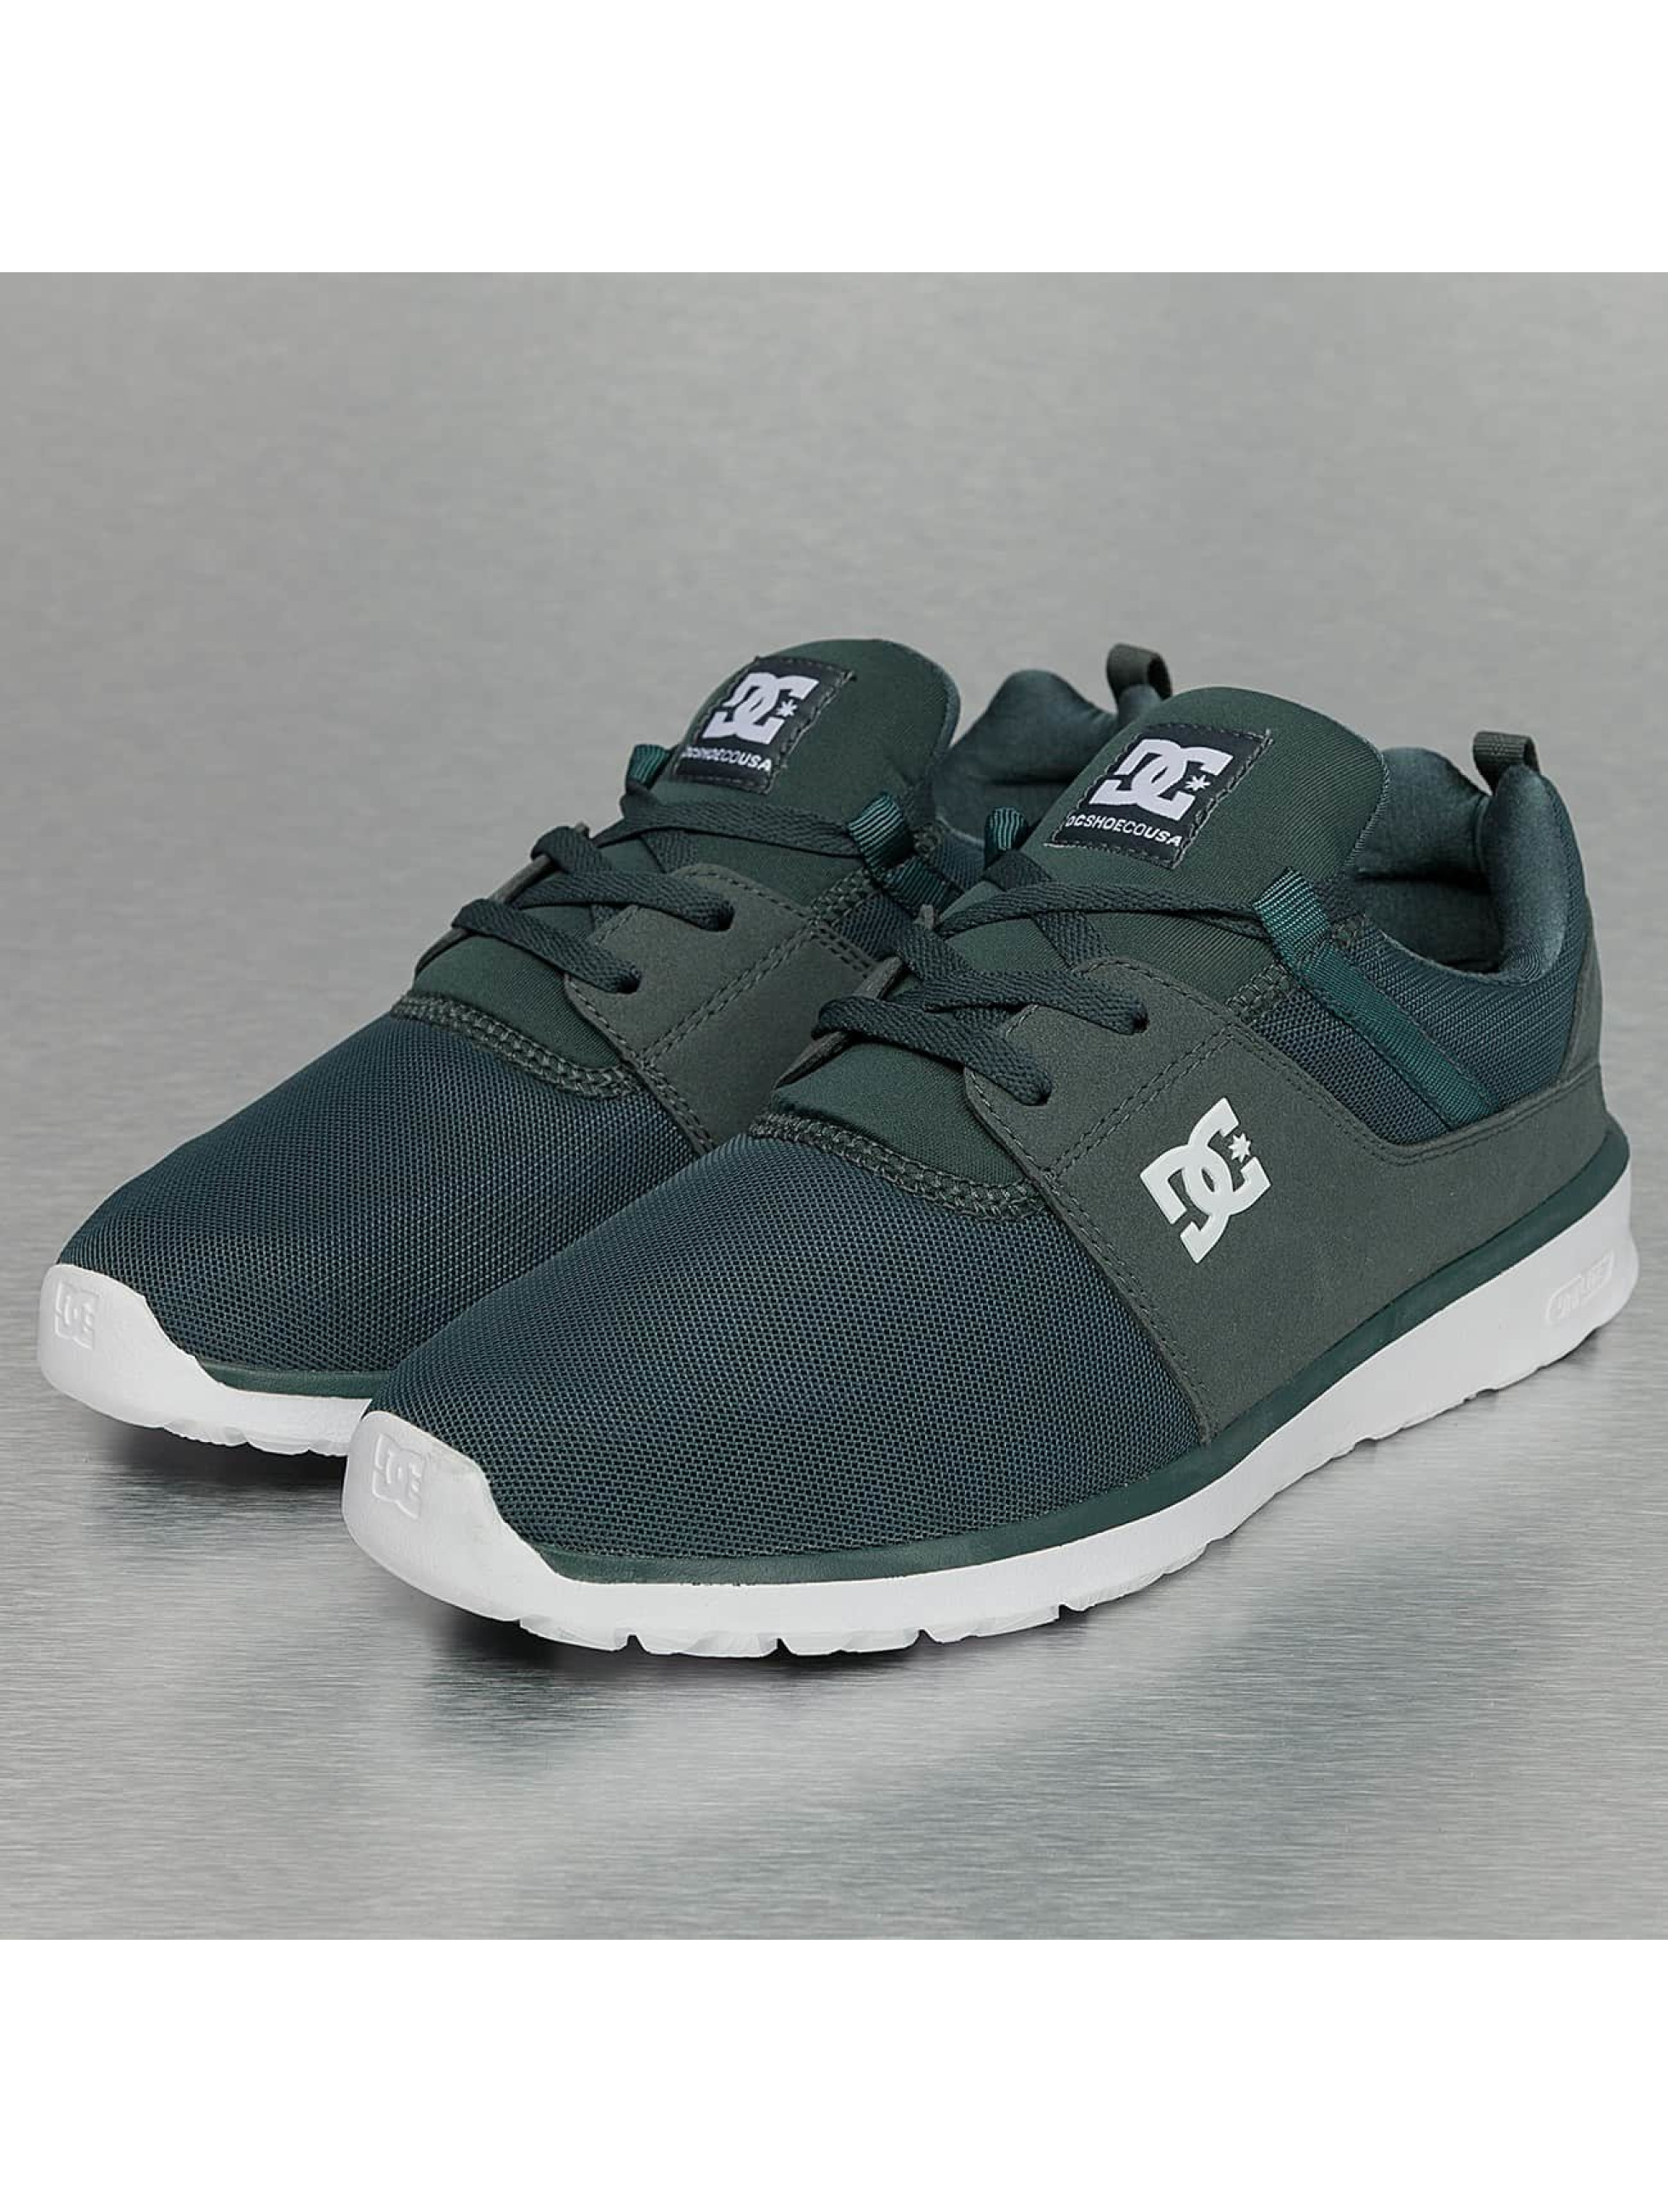 DC Heathrow Sneakers Dark Green Sale Angebote Ruhland